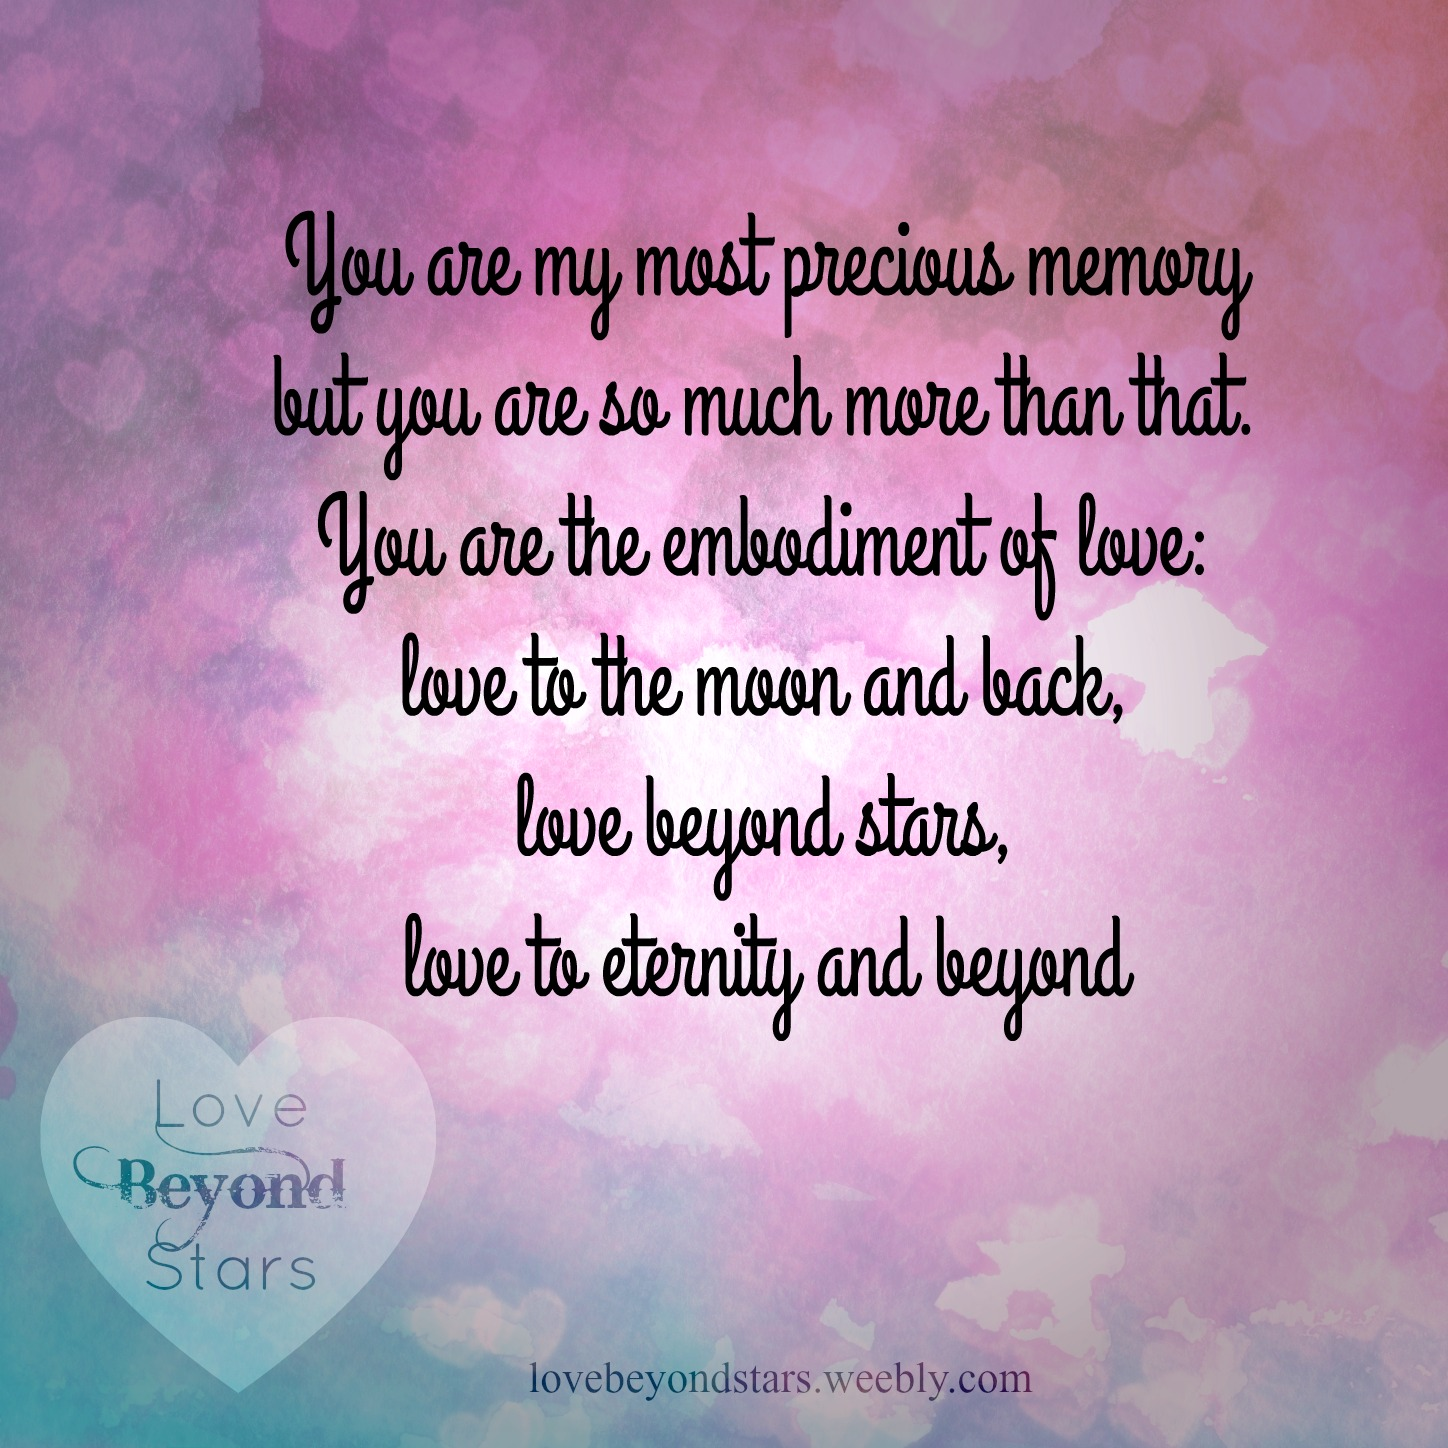 Most Precious Memory | The Grief Toolbox